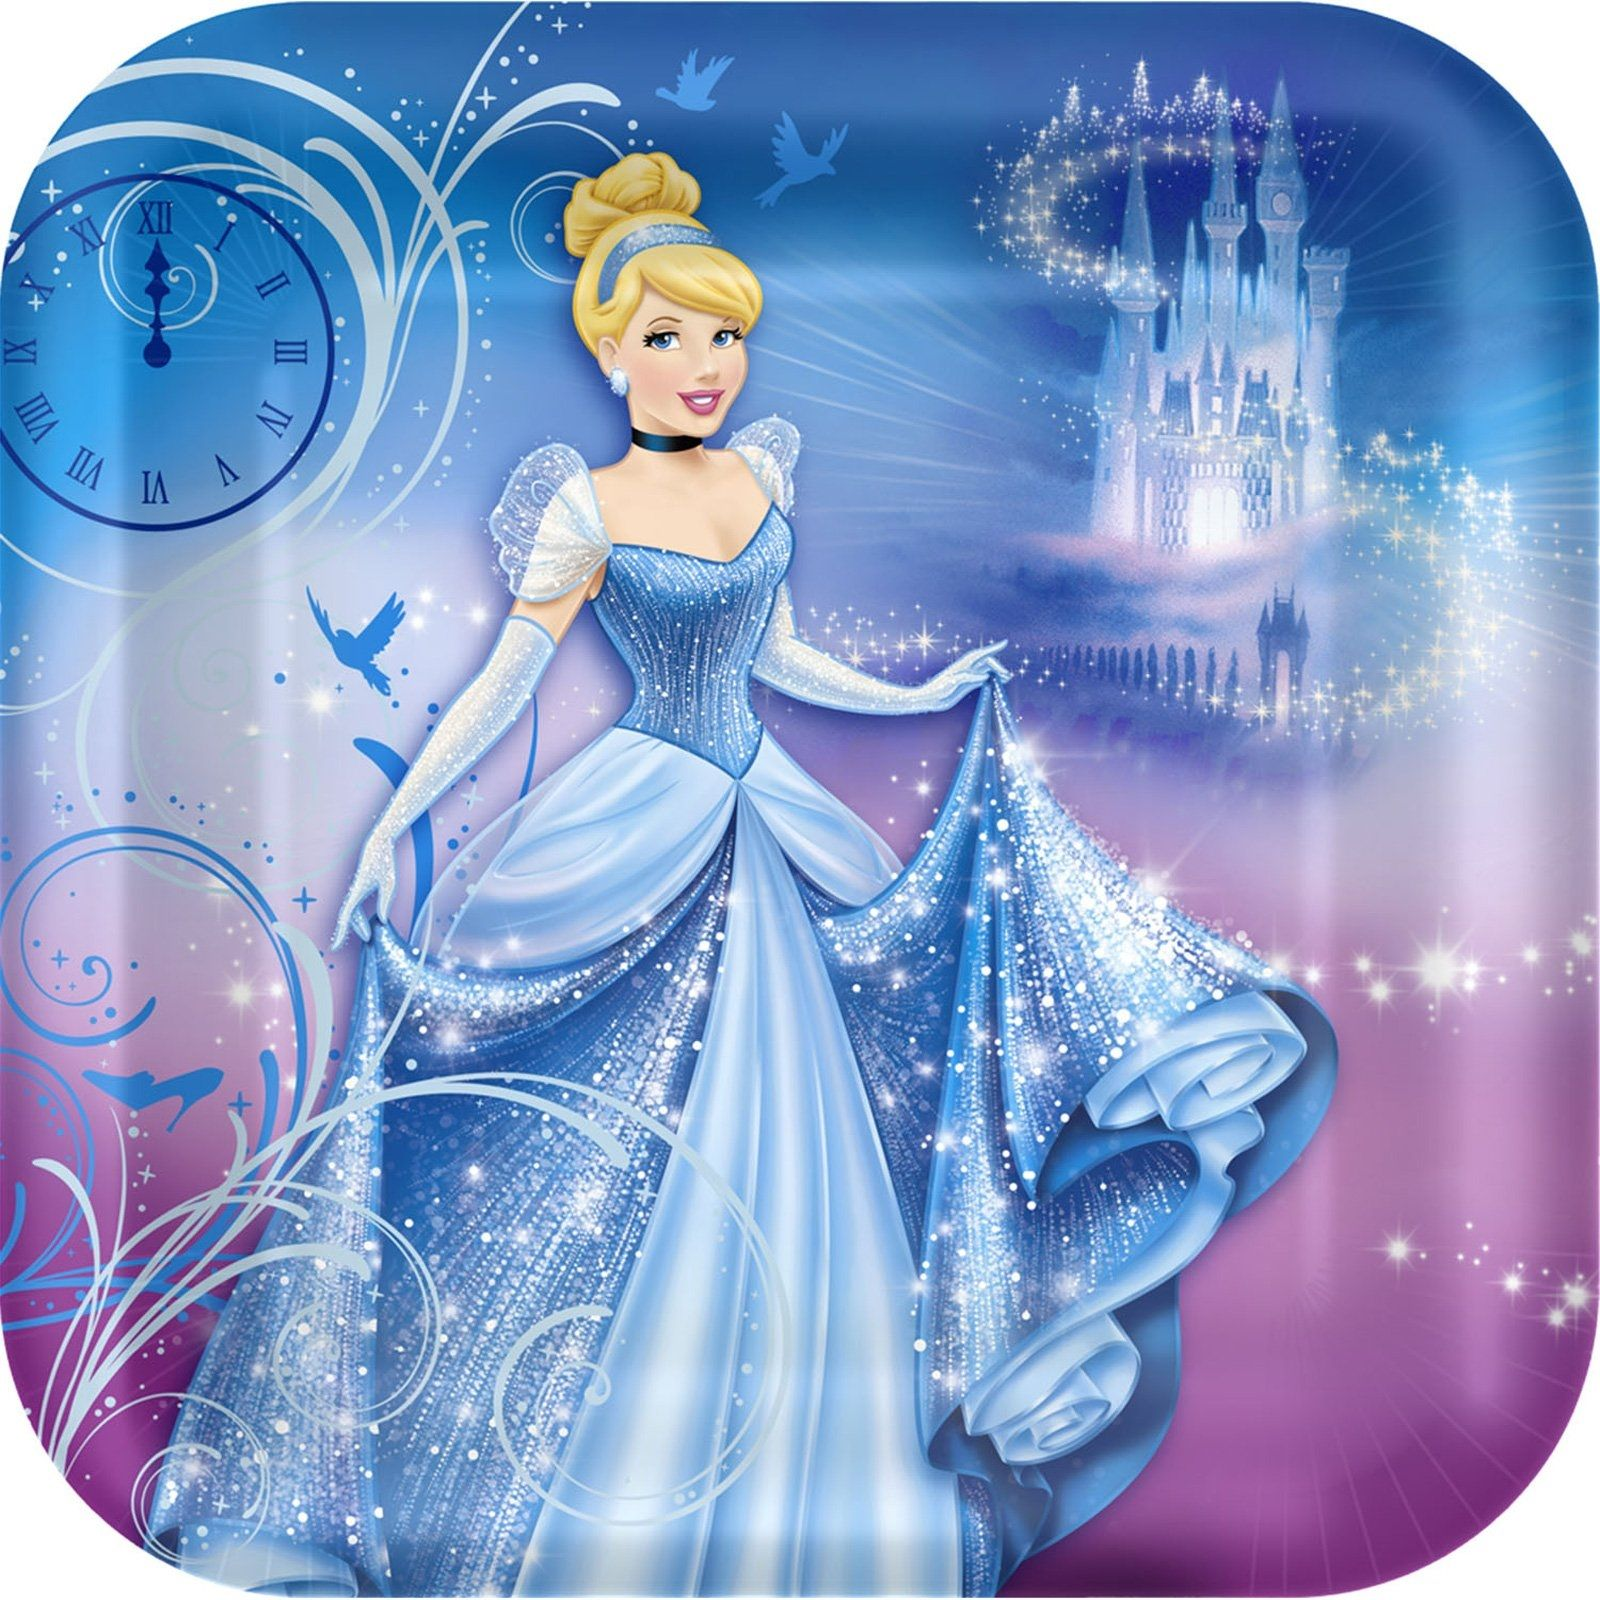 Disney princess images walt disney wallpapers princess wallpapers disney princess images walt disney wallpapers princess altavistaventures Image collections